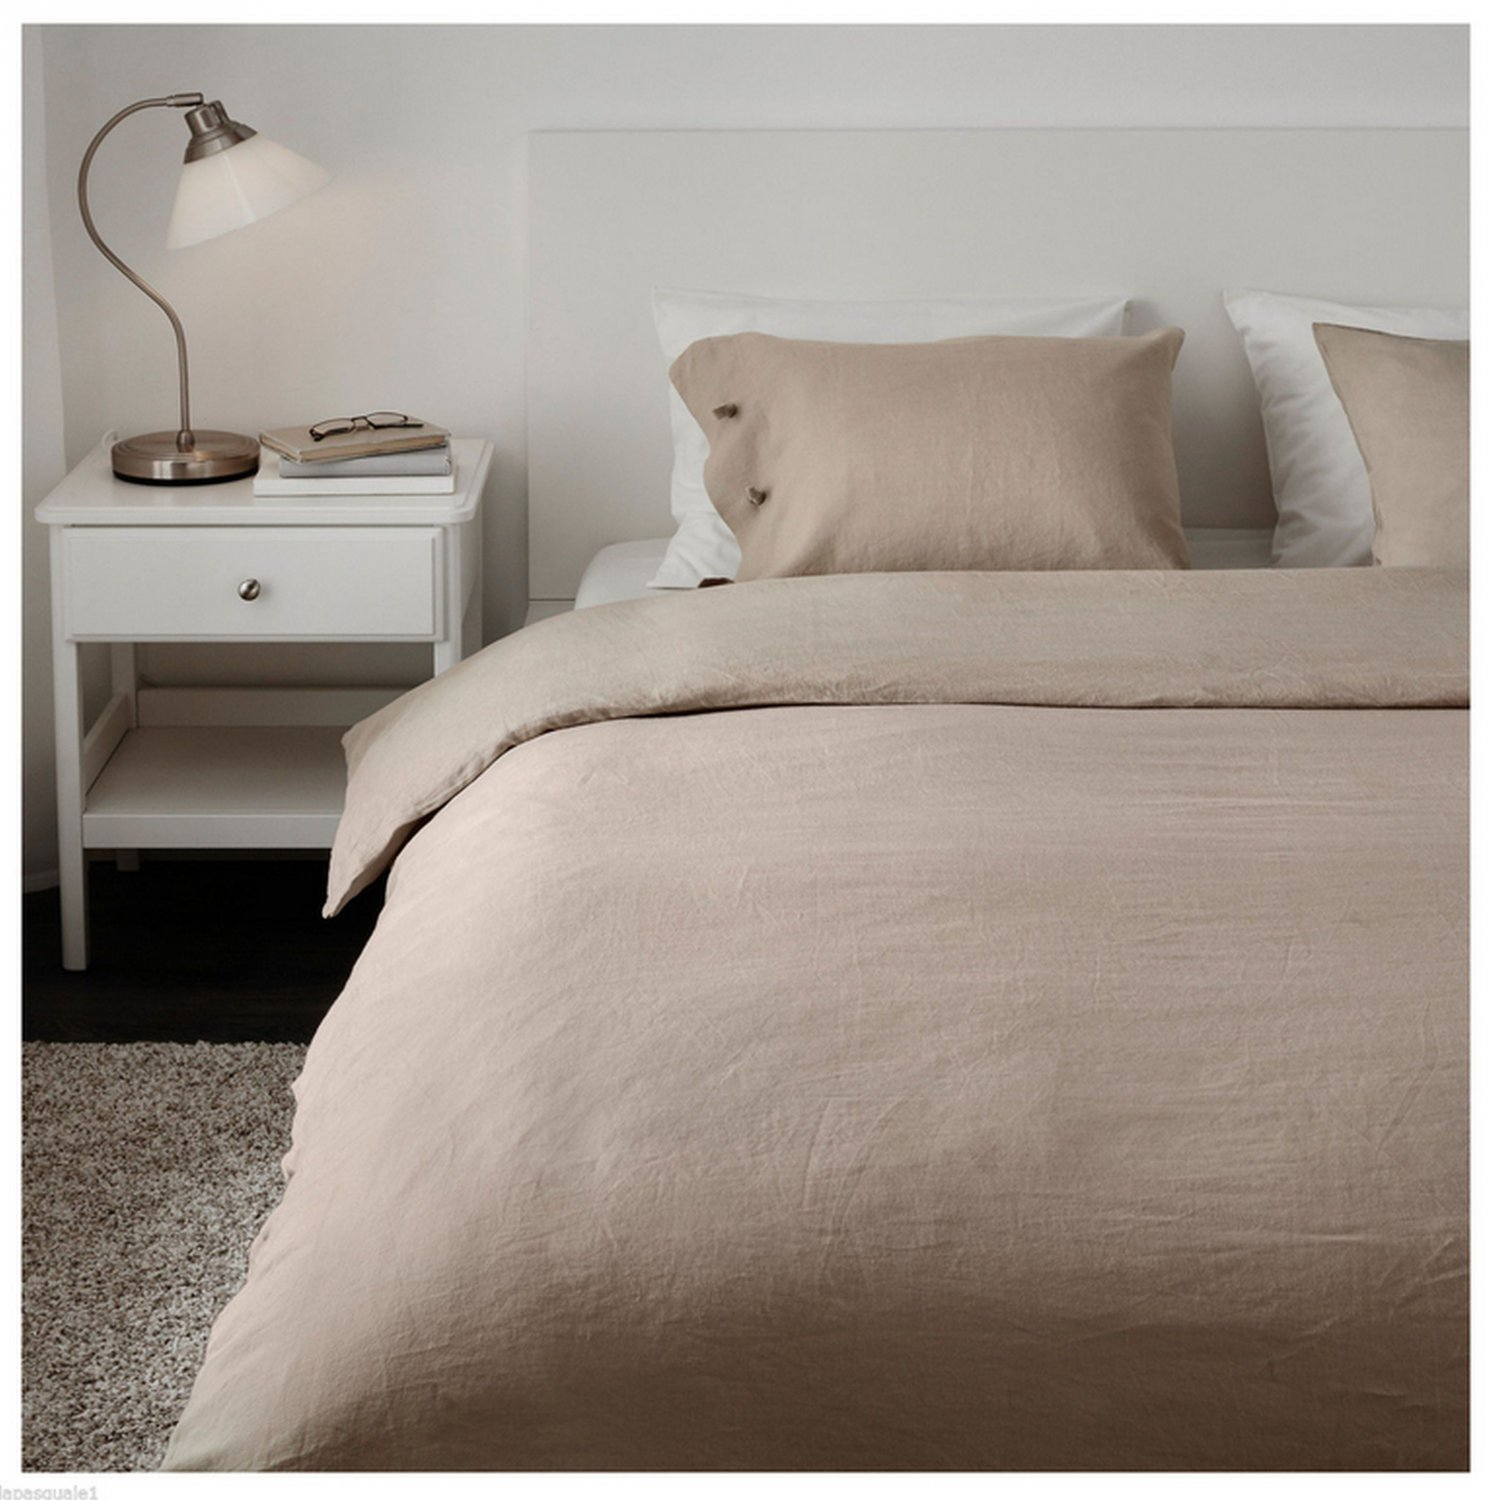 Ikea linblomma queen full duvet cover and pillowcases set for Ikea bed covers sets queen